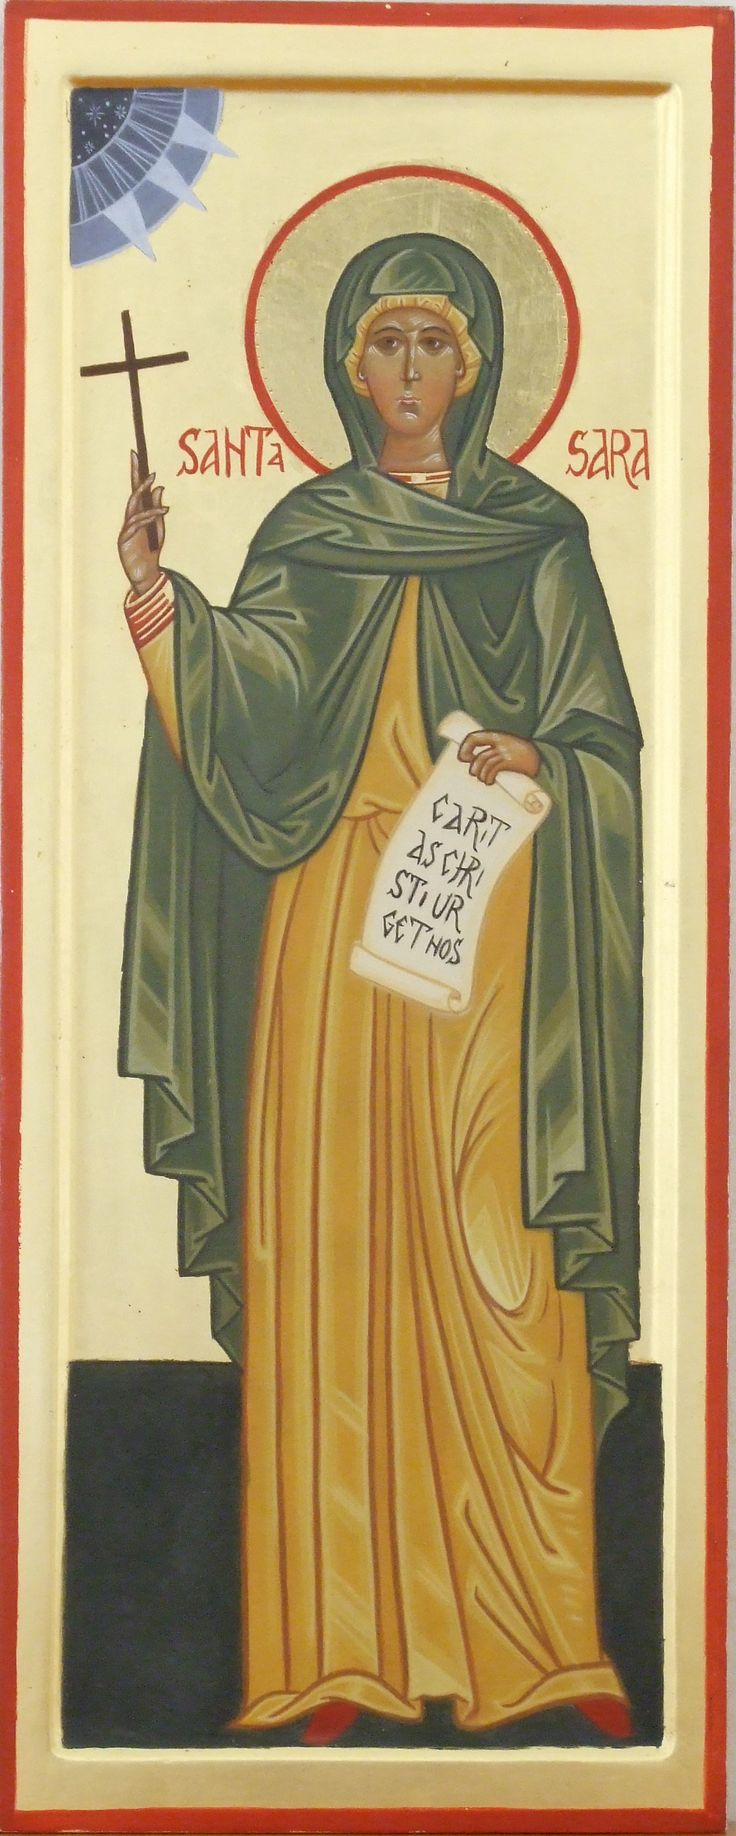 65 Best Images About St Sarah On Pinterest The Gypsy